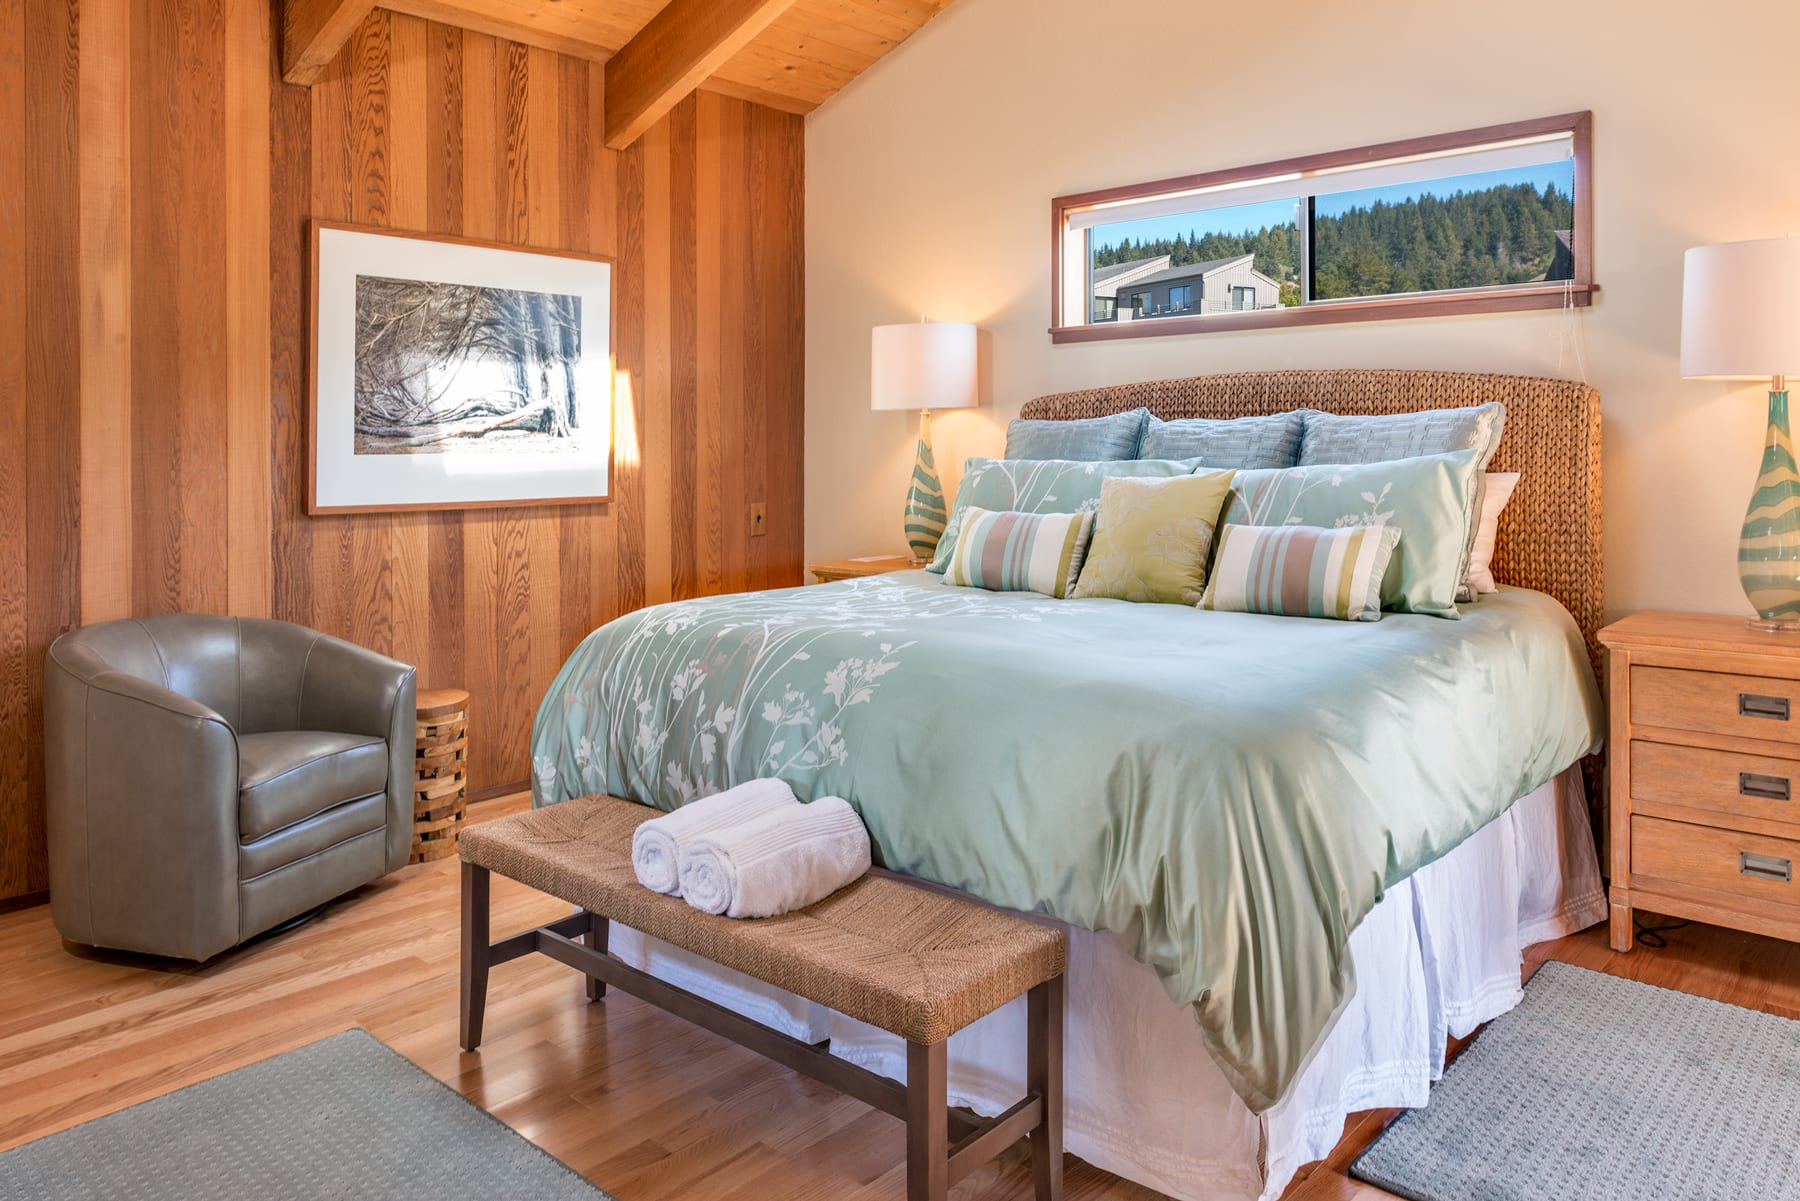 Principal bedroom-King size bed, linens provided